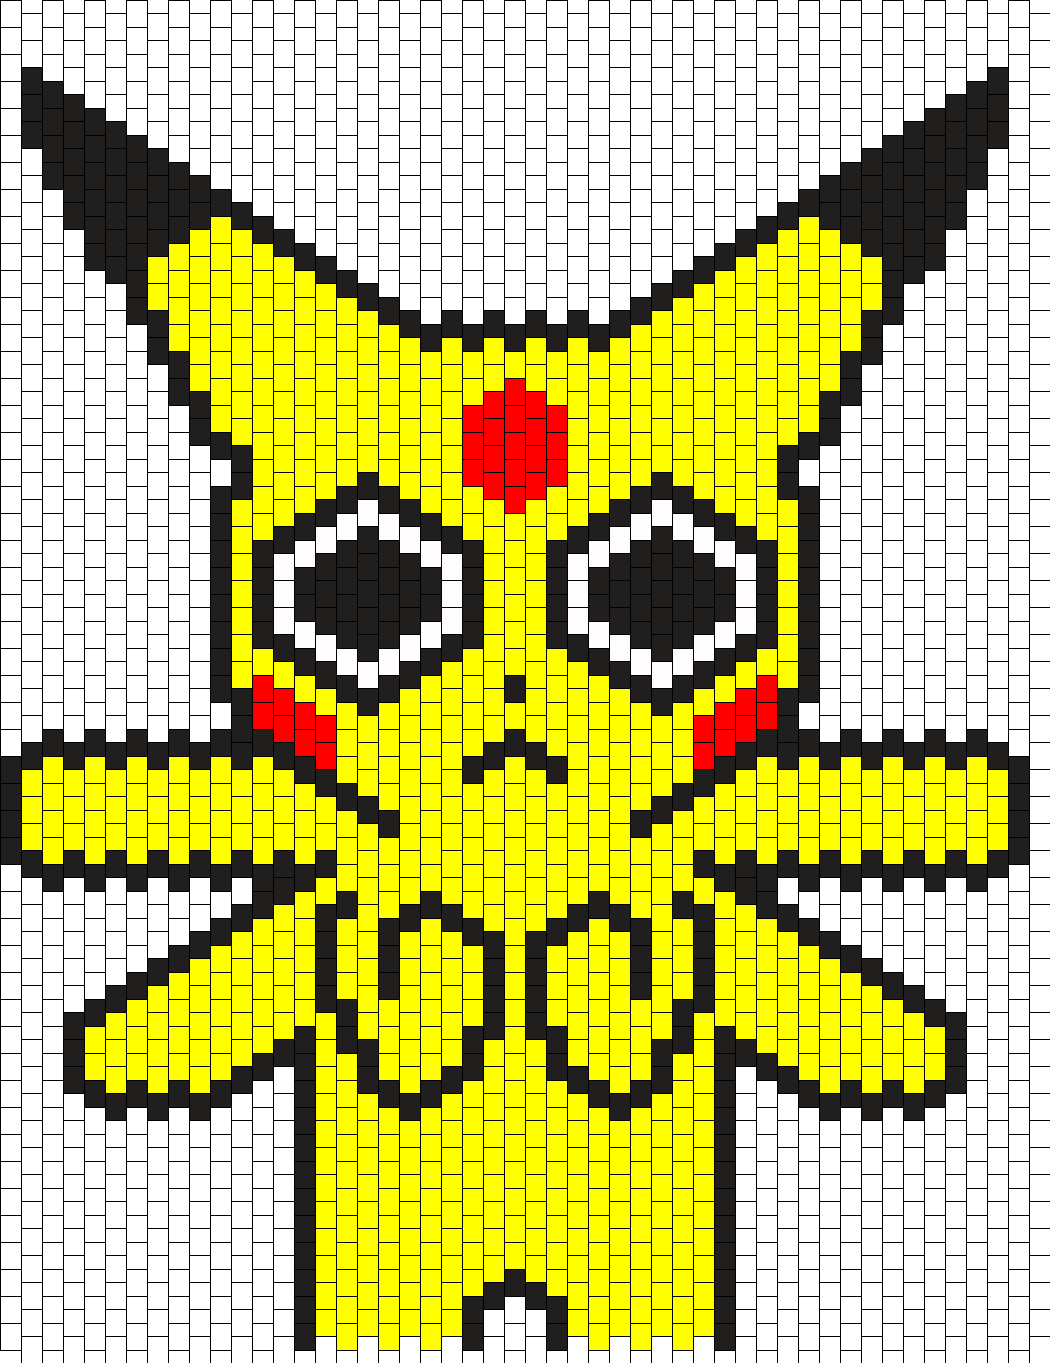 Pikachu On Acid Backpack Pattern